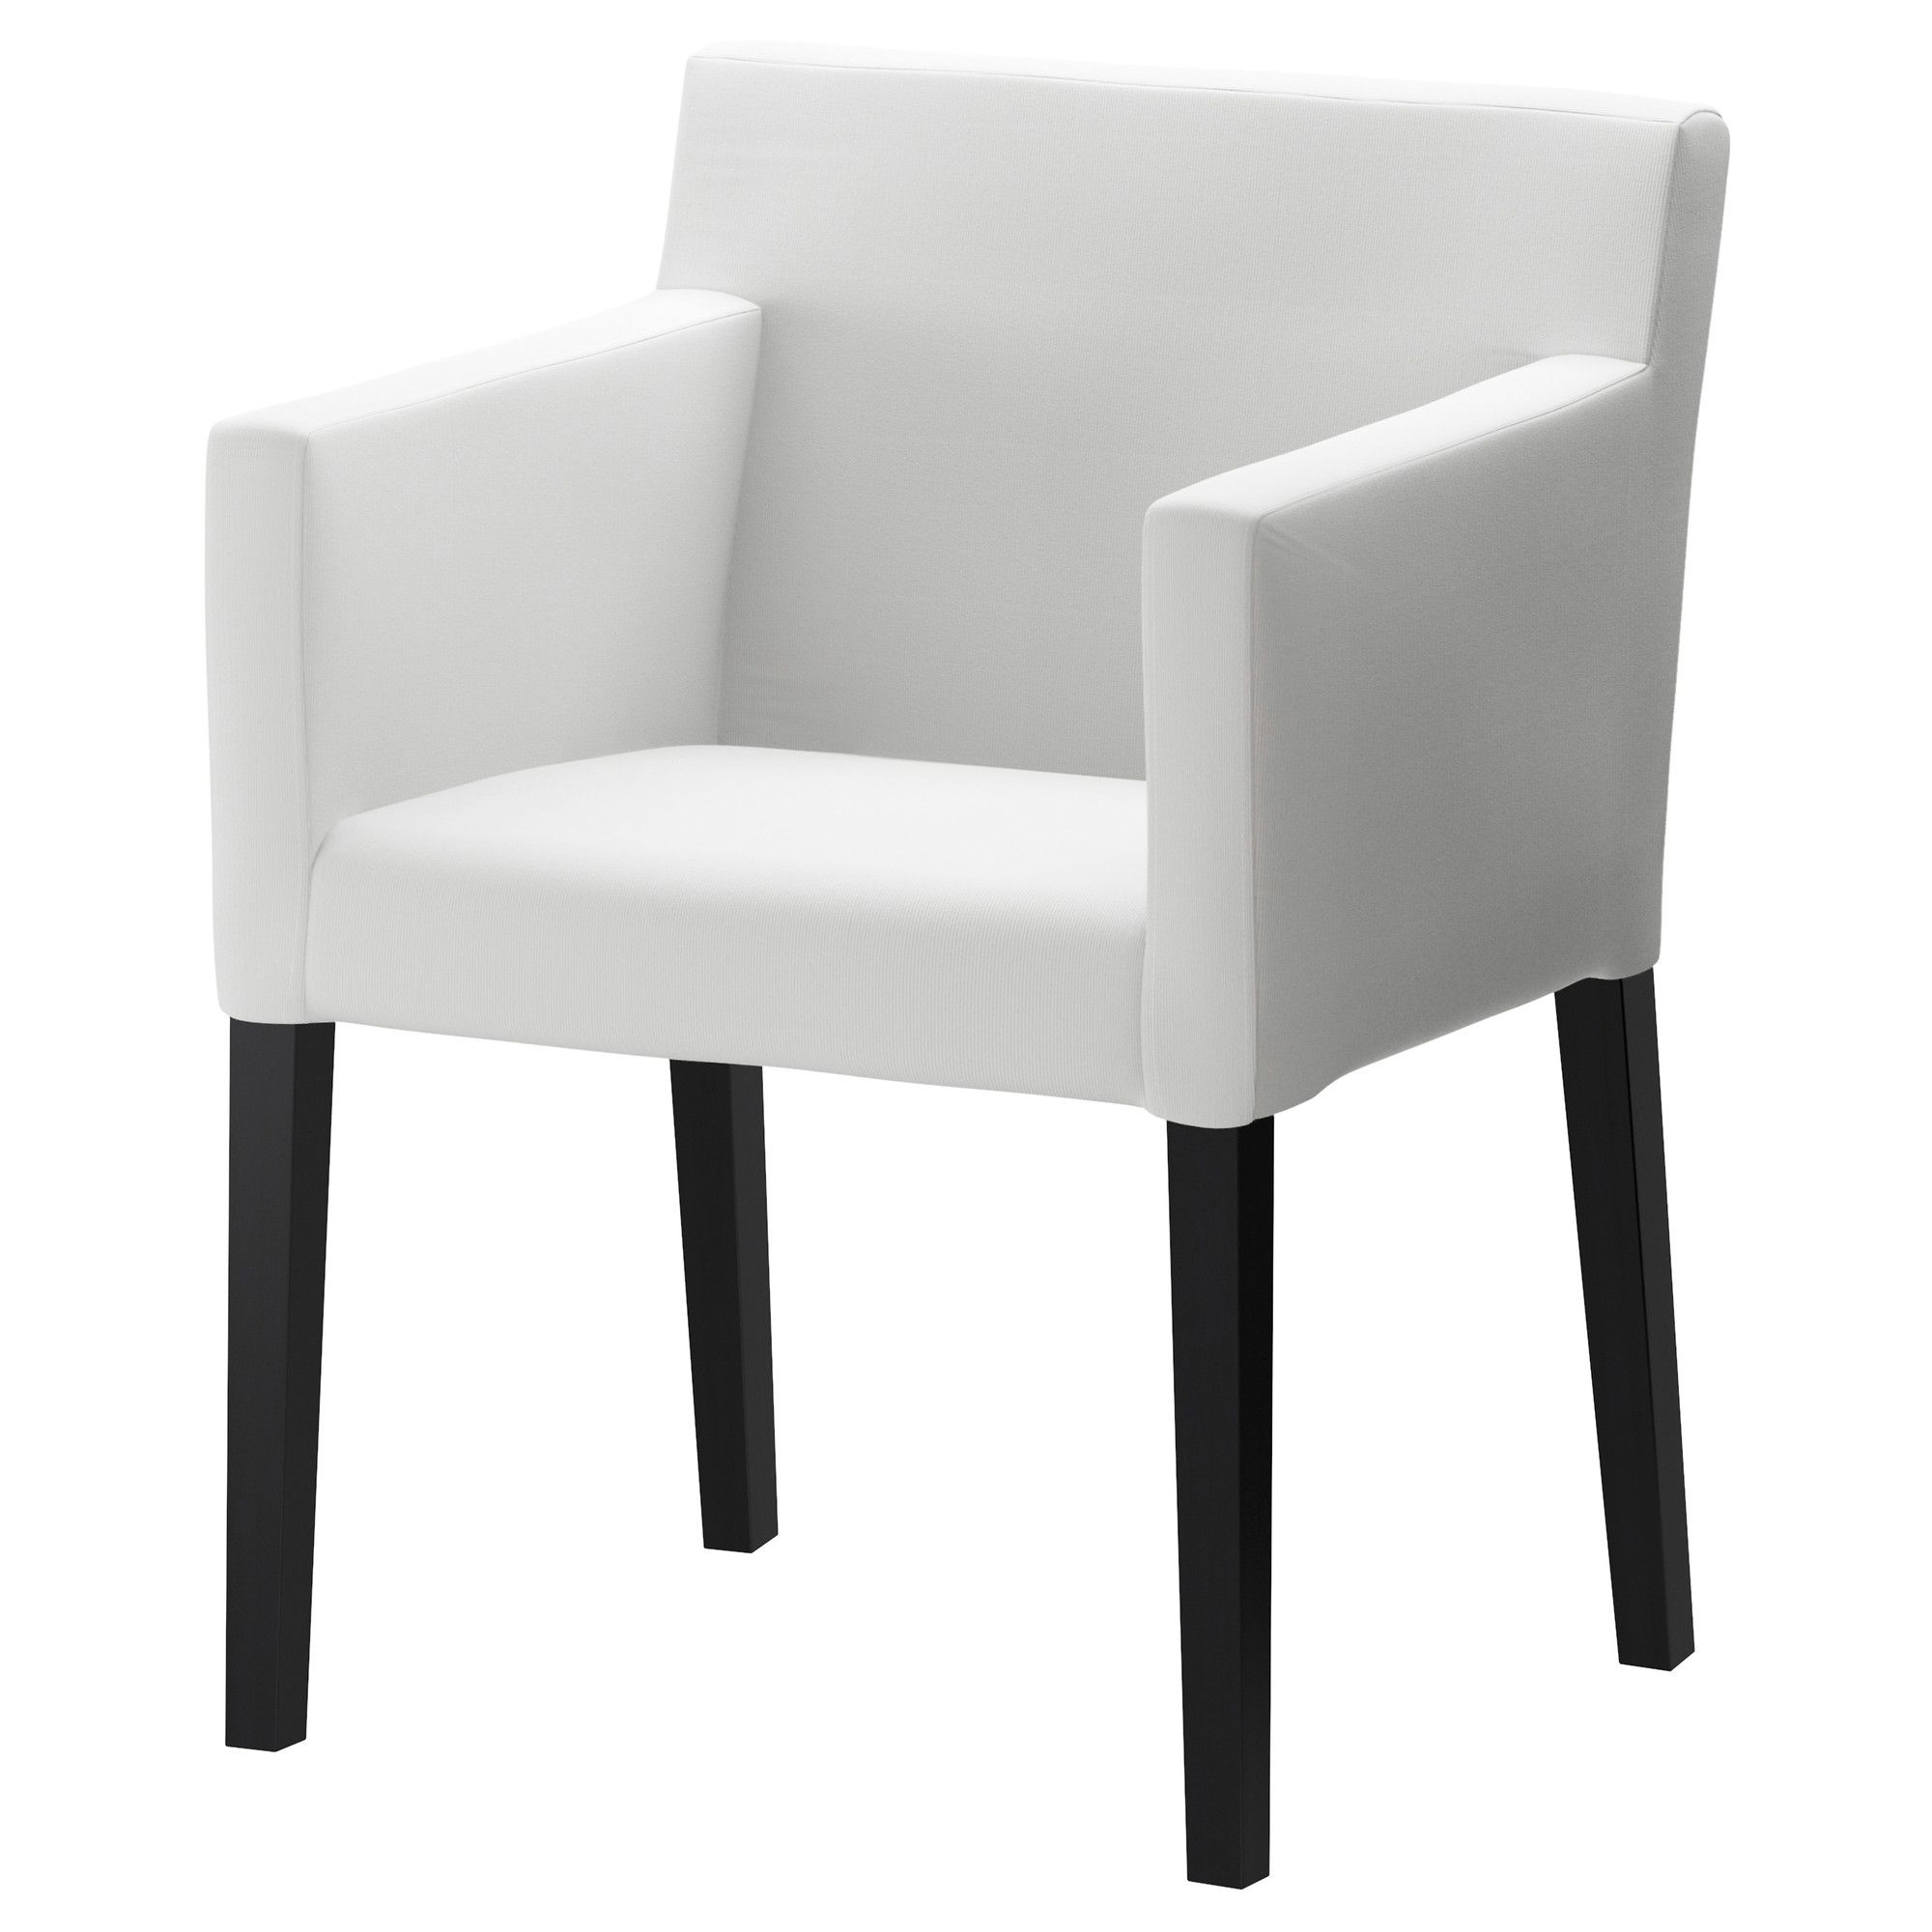 NILS Chair with armrests black Blekinge white